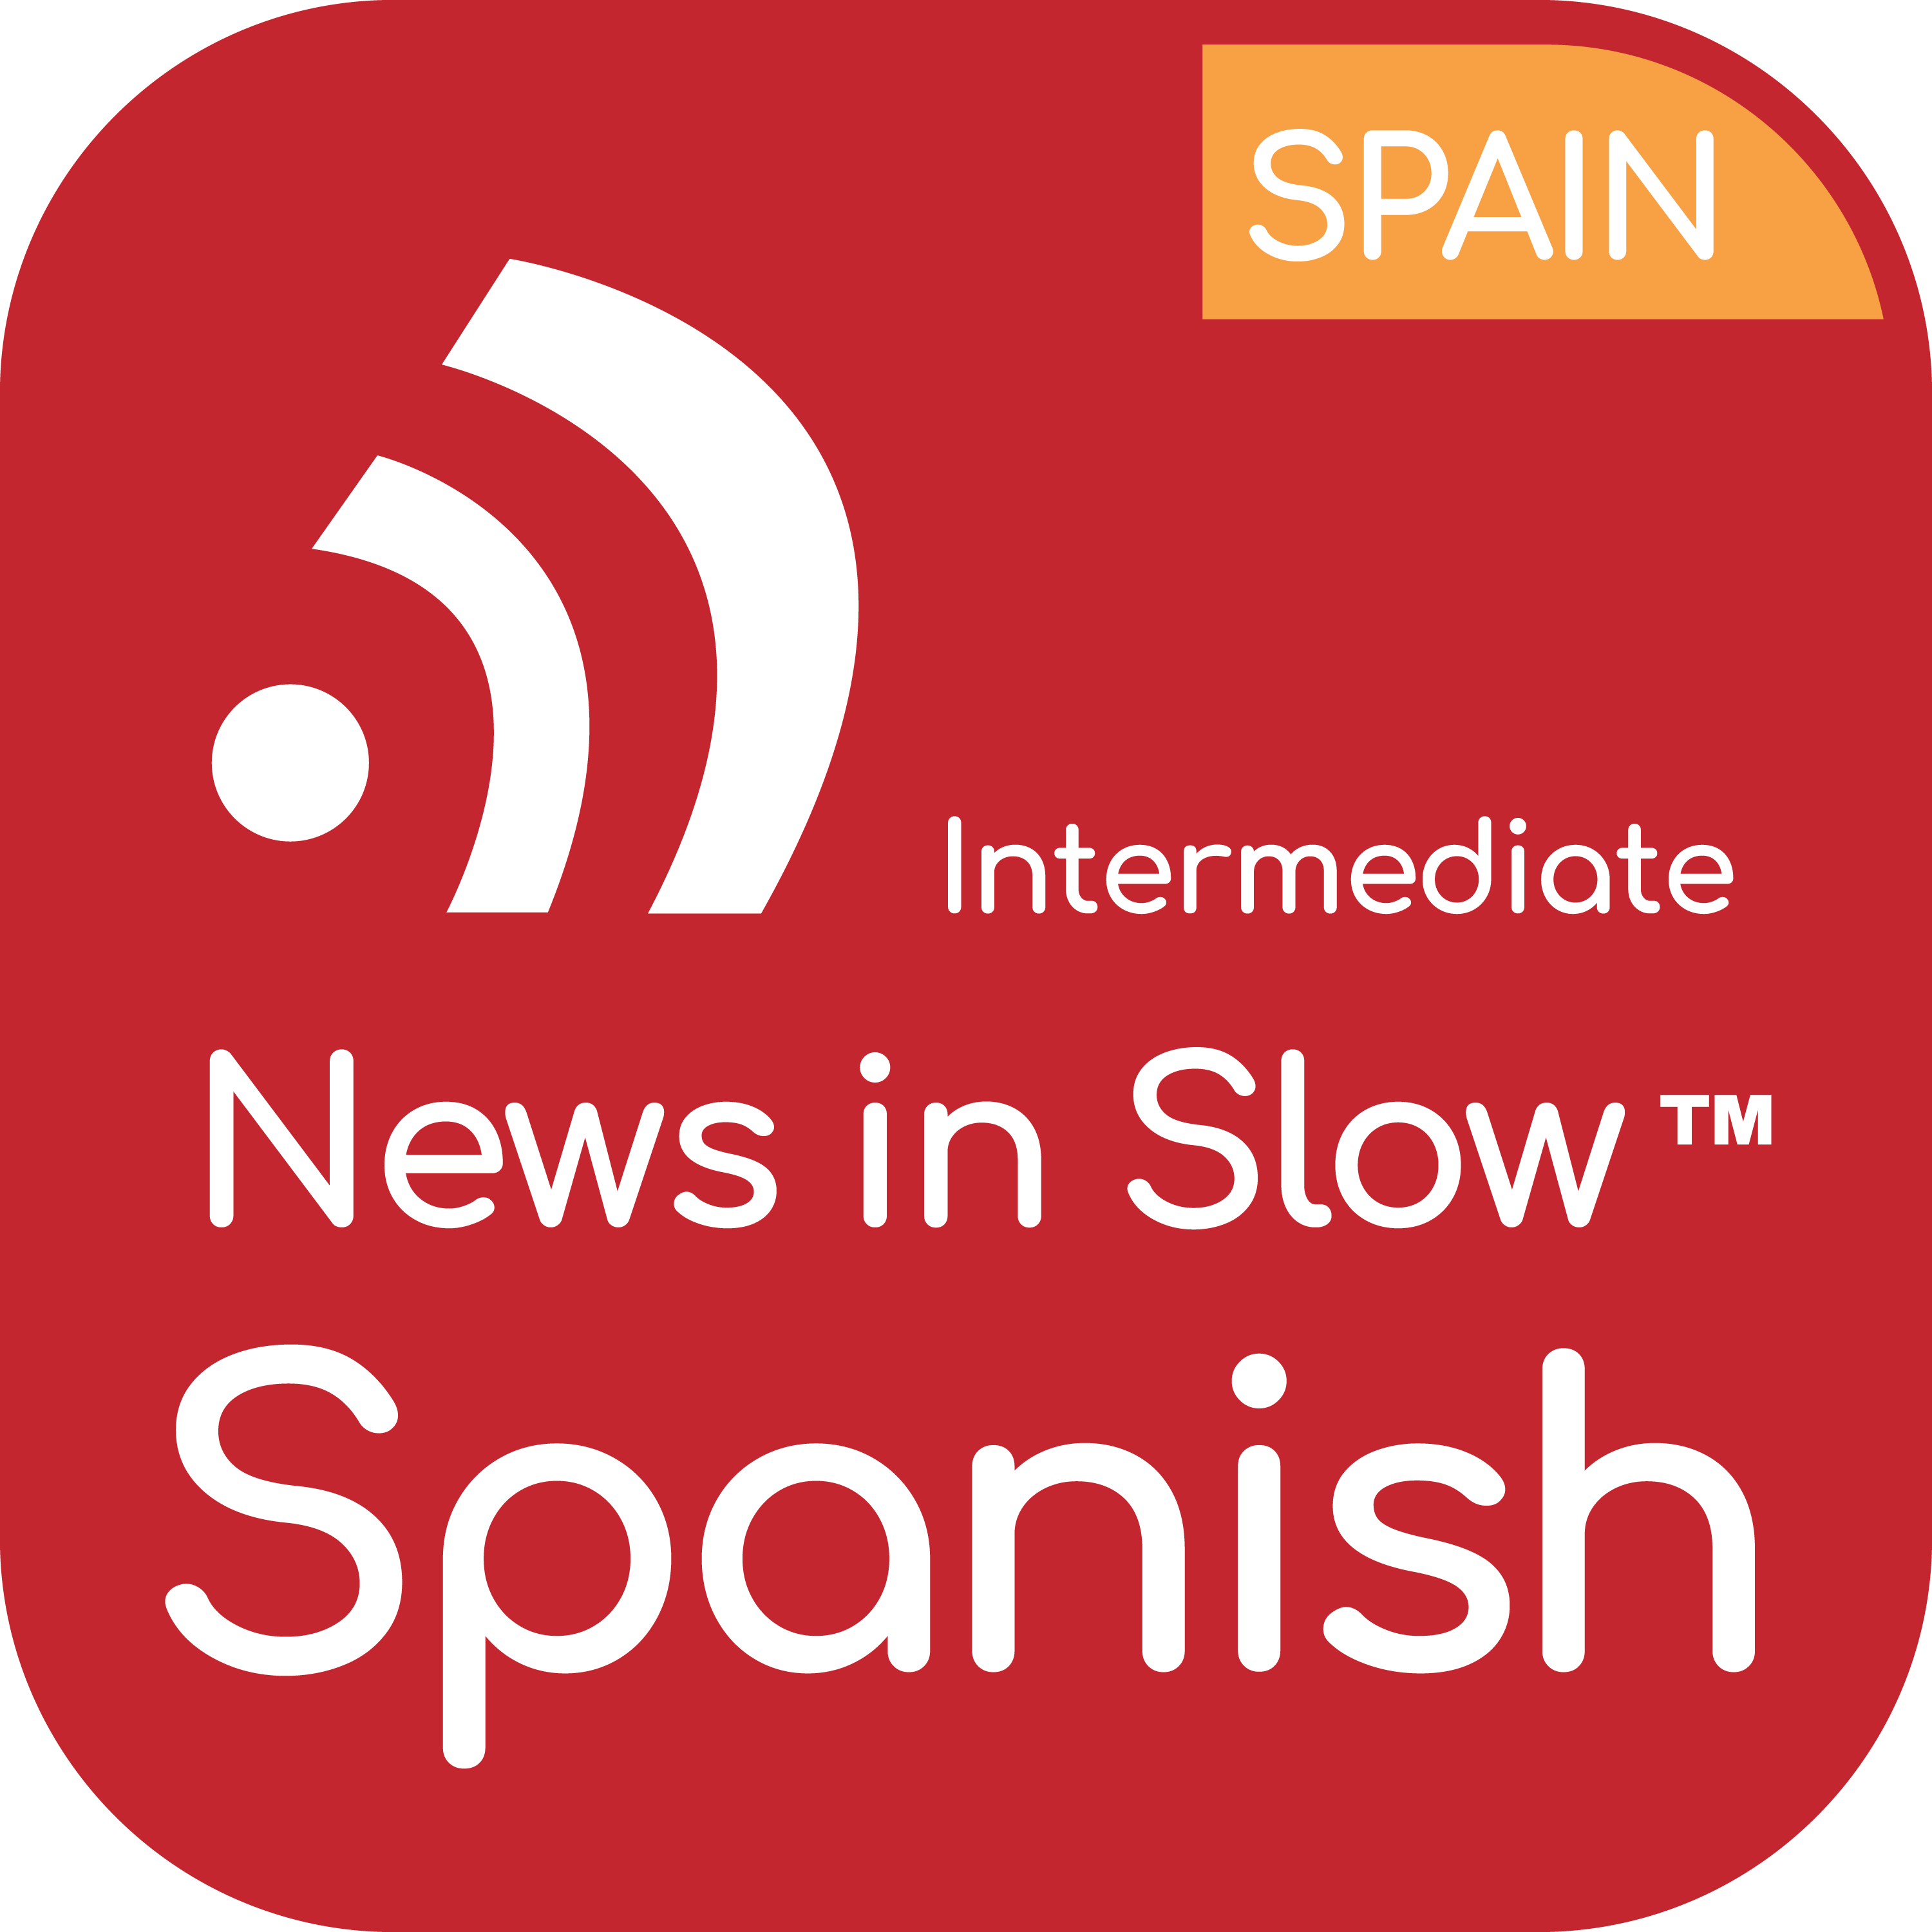 News in Slow Spanish - #619 - Spanish Course with Current Events